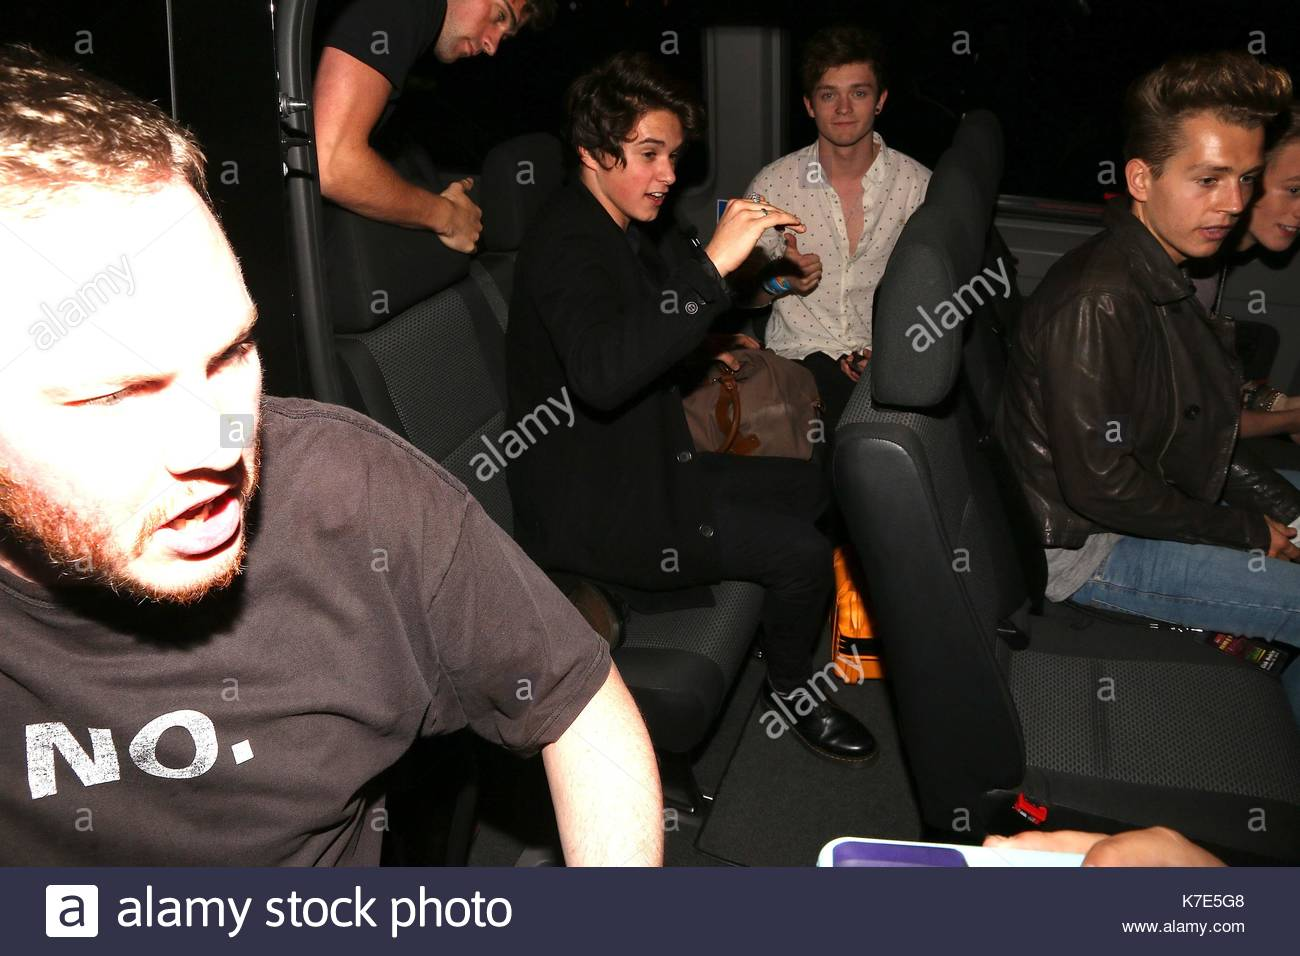 Bradley Simpson Connor Ball And James Mcvey R5 And The Vamps Seen